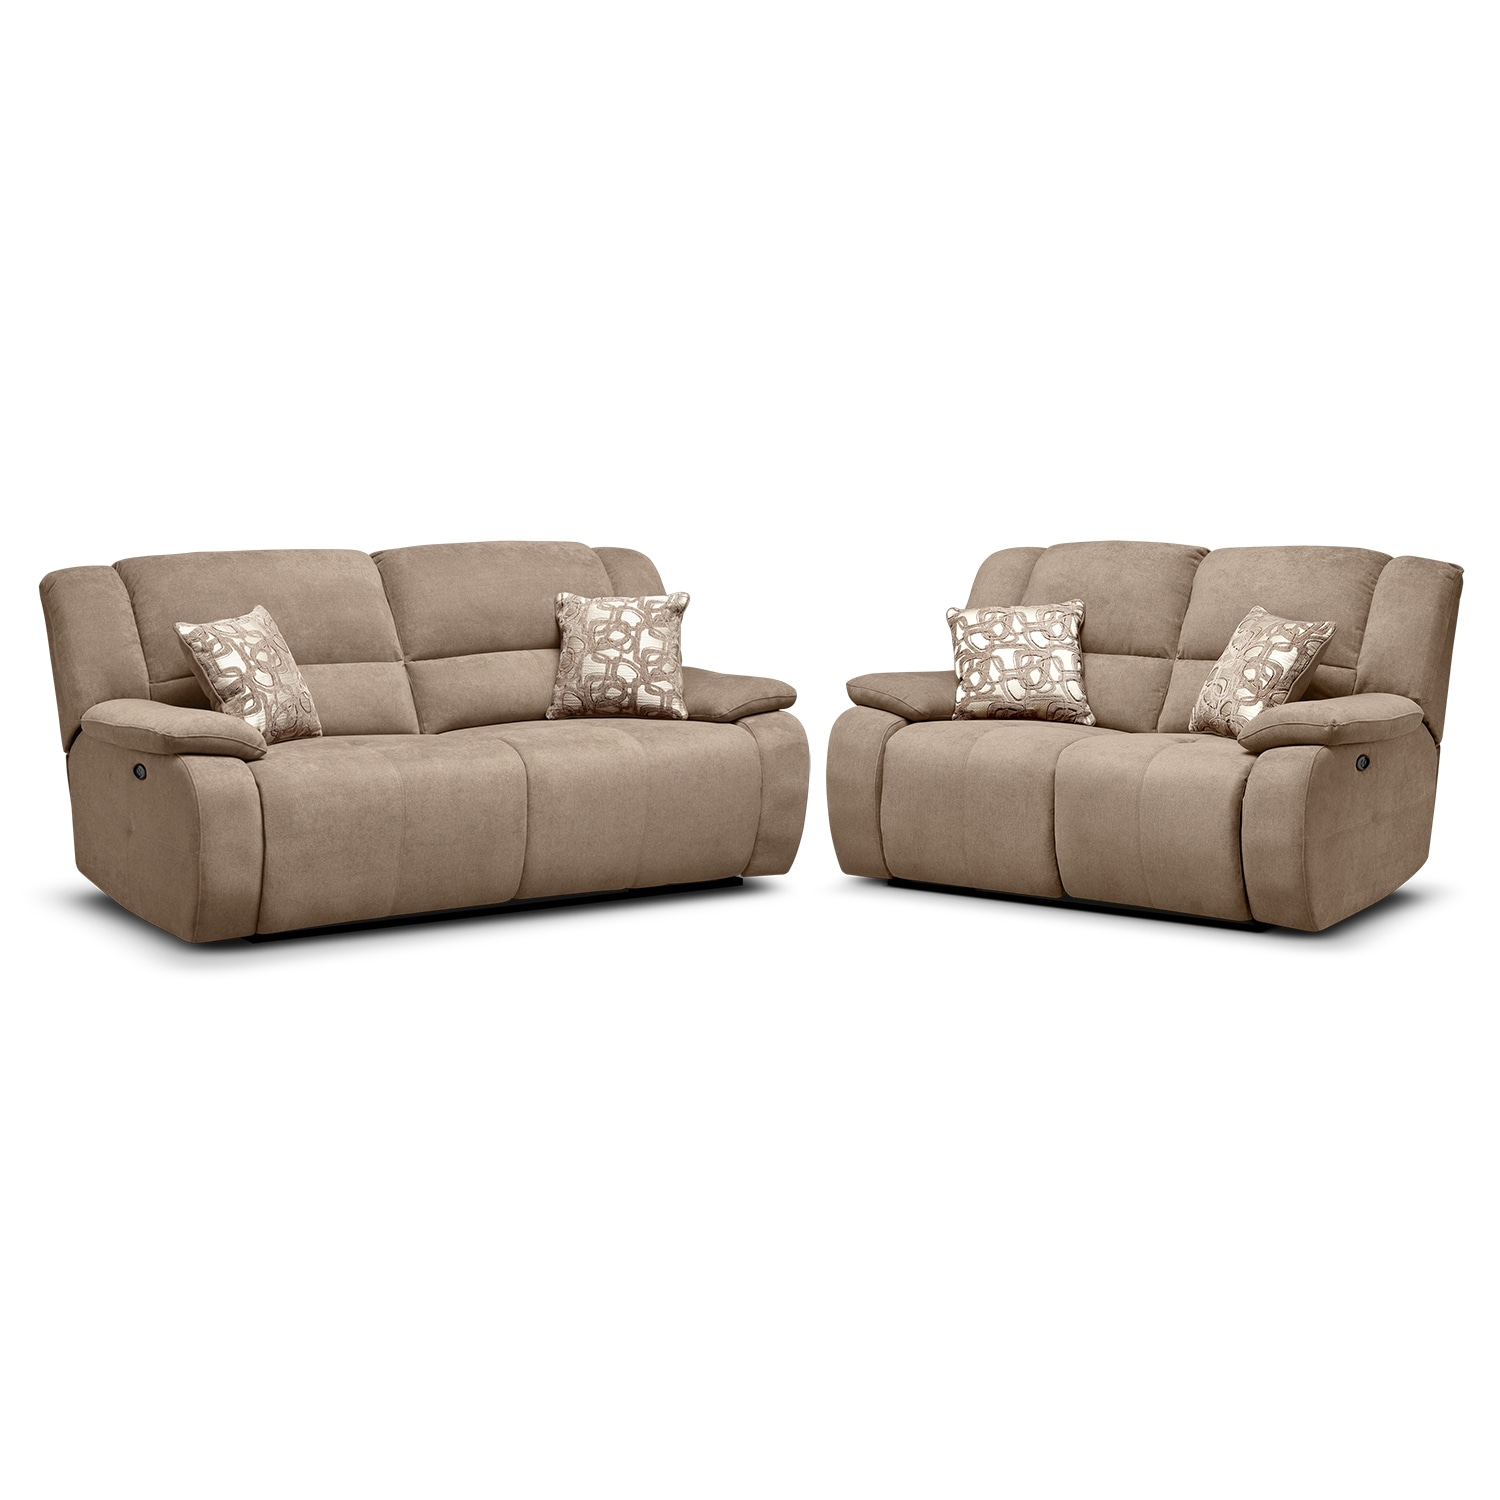 Living Room Furniture - Destin Beige 2 Pc. Power Reclining Living Room